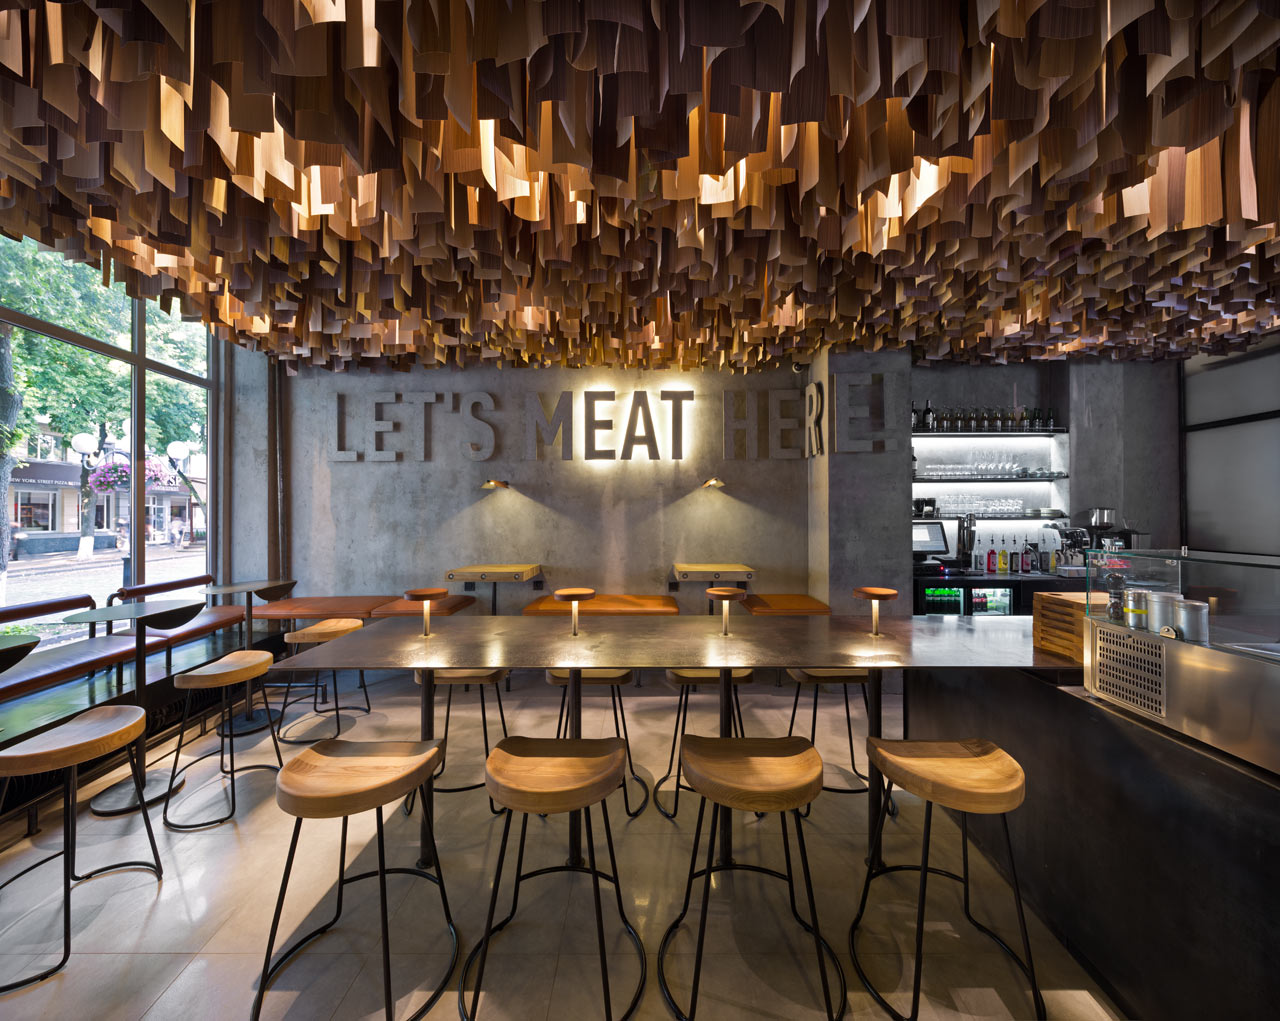 Shade Burger restaurant branding & interior design - Grits